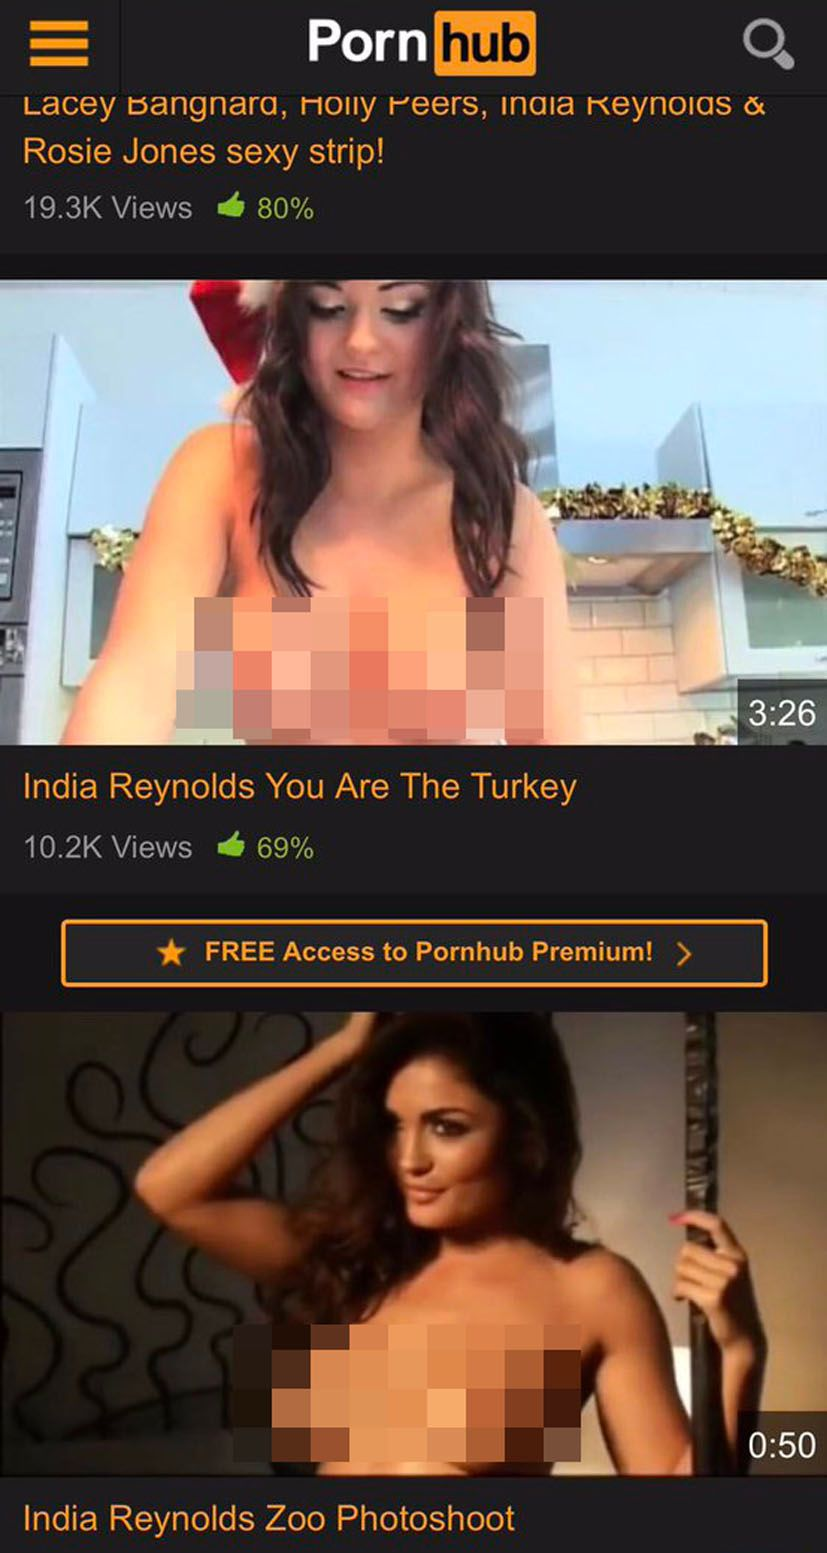 India PornHub, Jack Fowler, Joanna, Love Island, India, PornHub, gossip column, news, trash, nudes, video, pictures, porn, Instagram, The Sun, Curtis, Amy, Michael, Amber, Maura